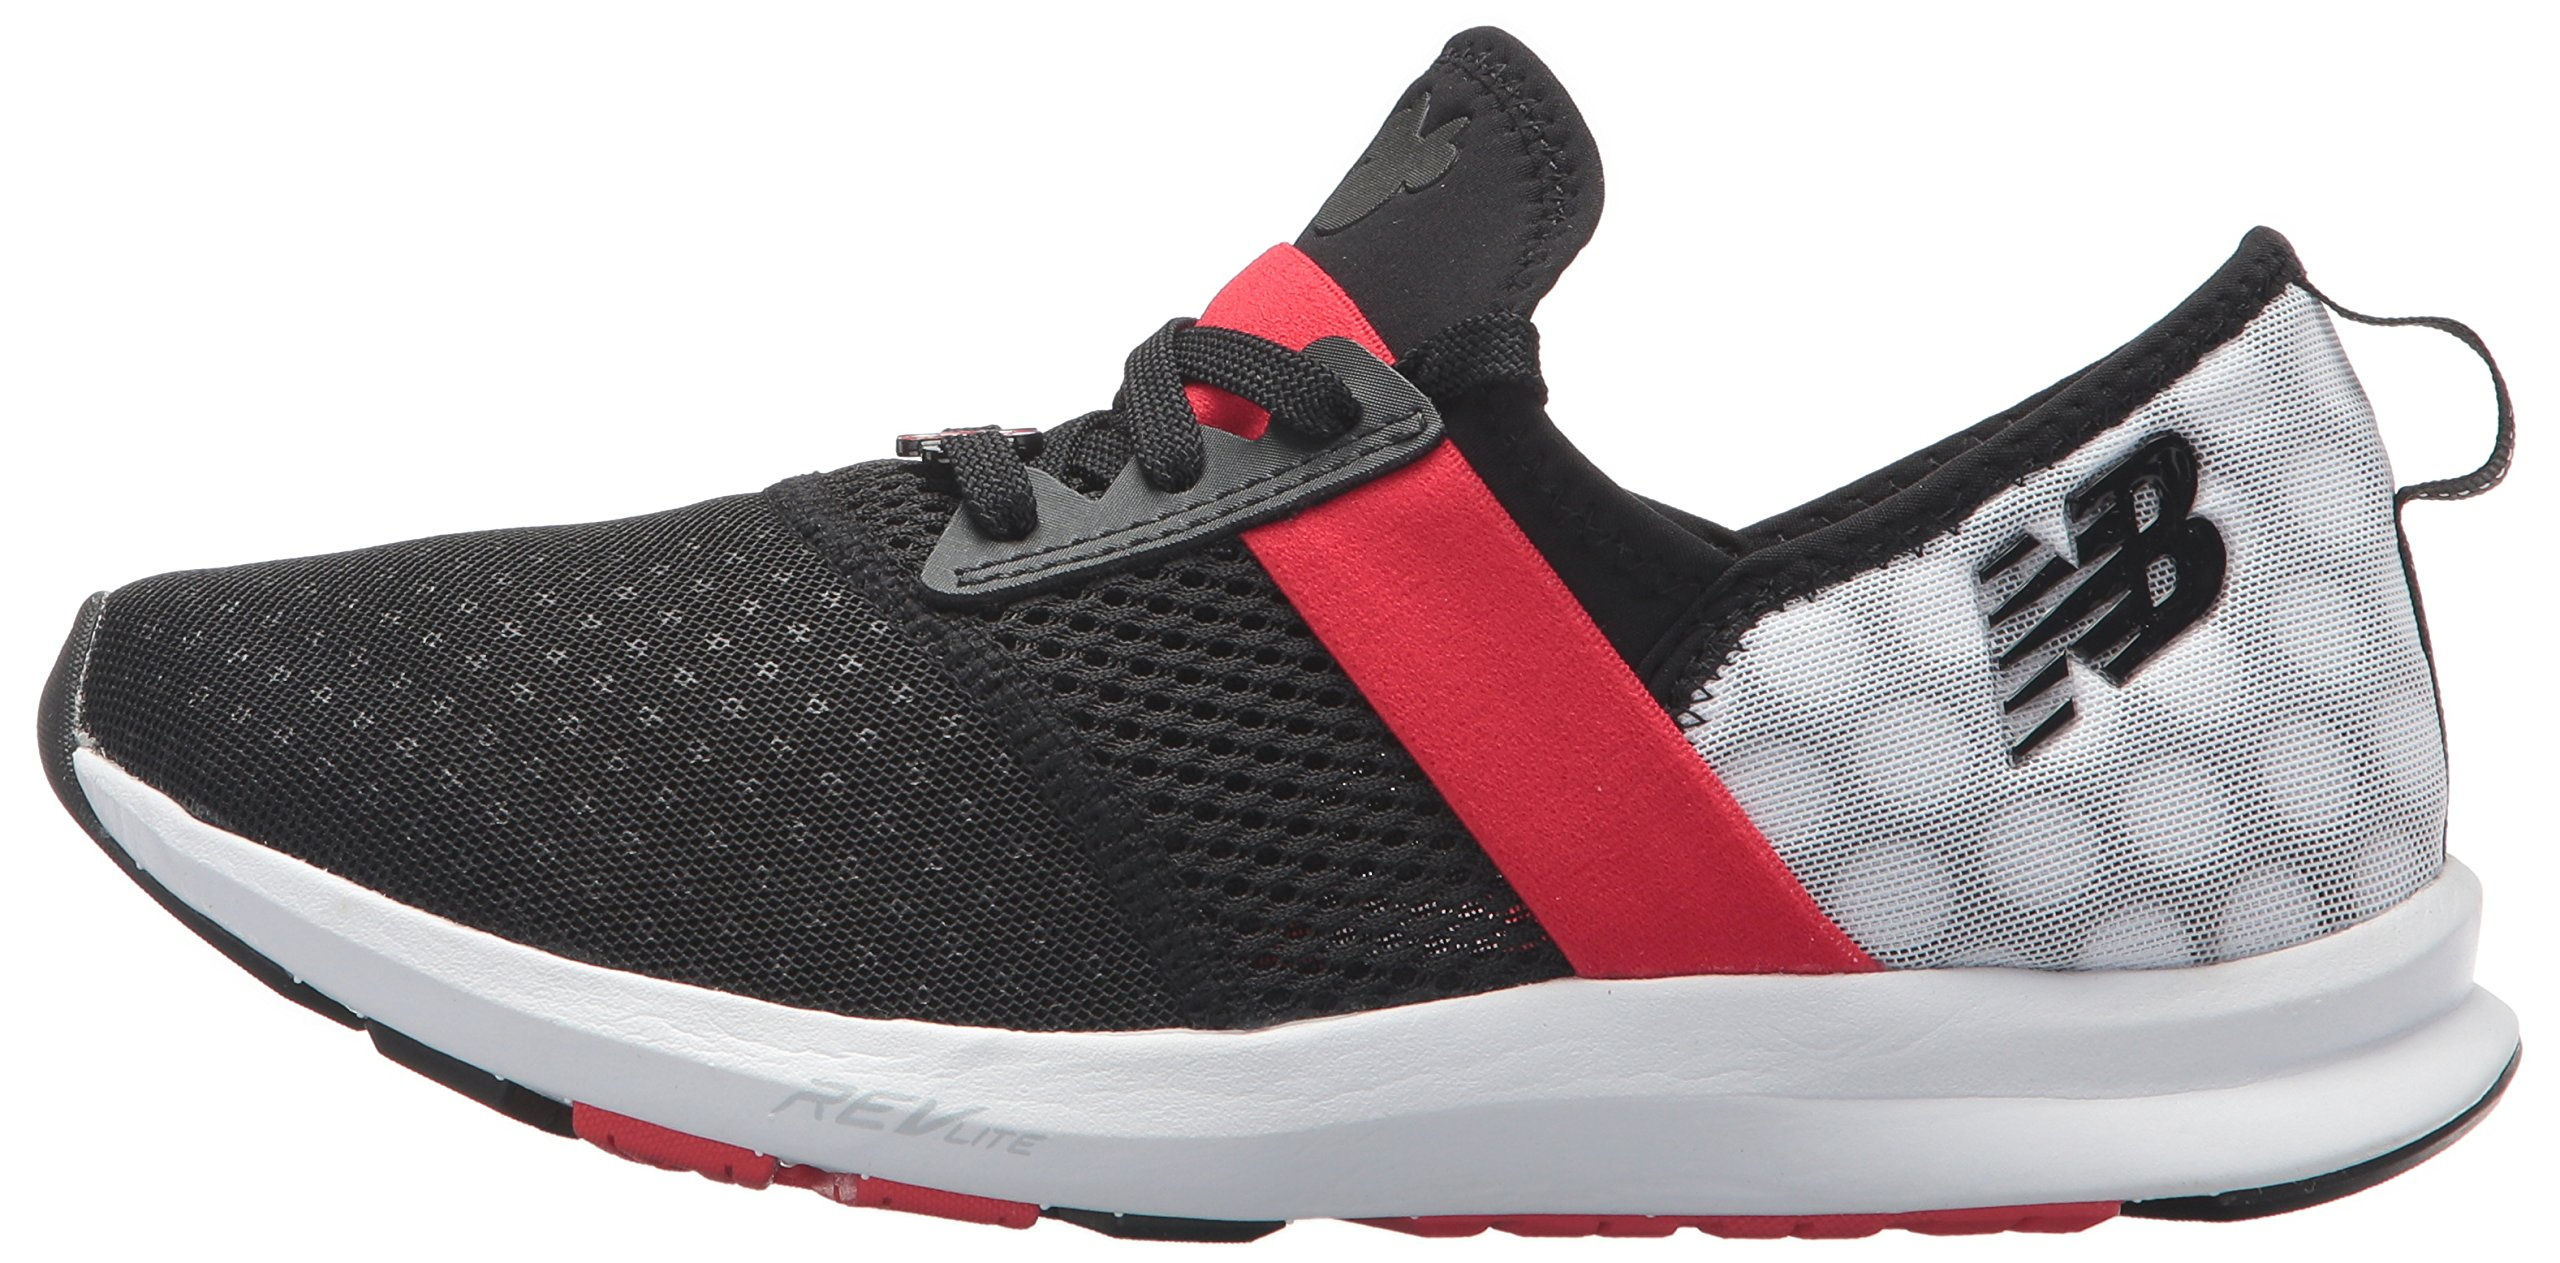 New Balance Women's Nergize V1 Fuelcore Disney Cross Trainer, Black/Red, 85 B US by New Balance (Image #5)